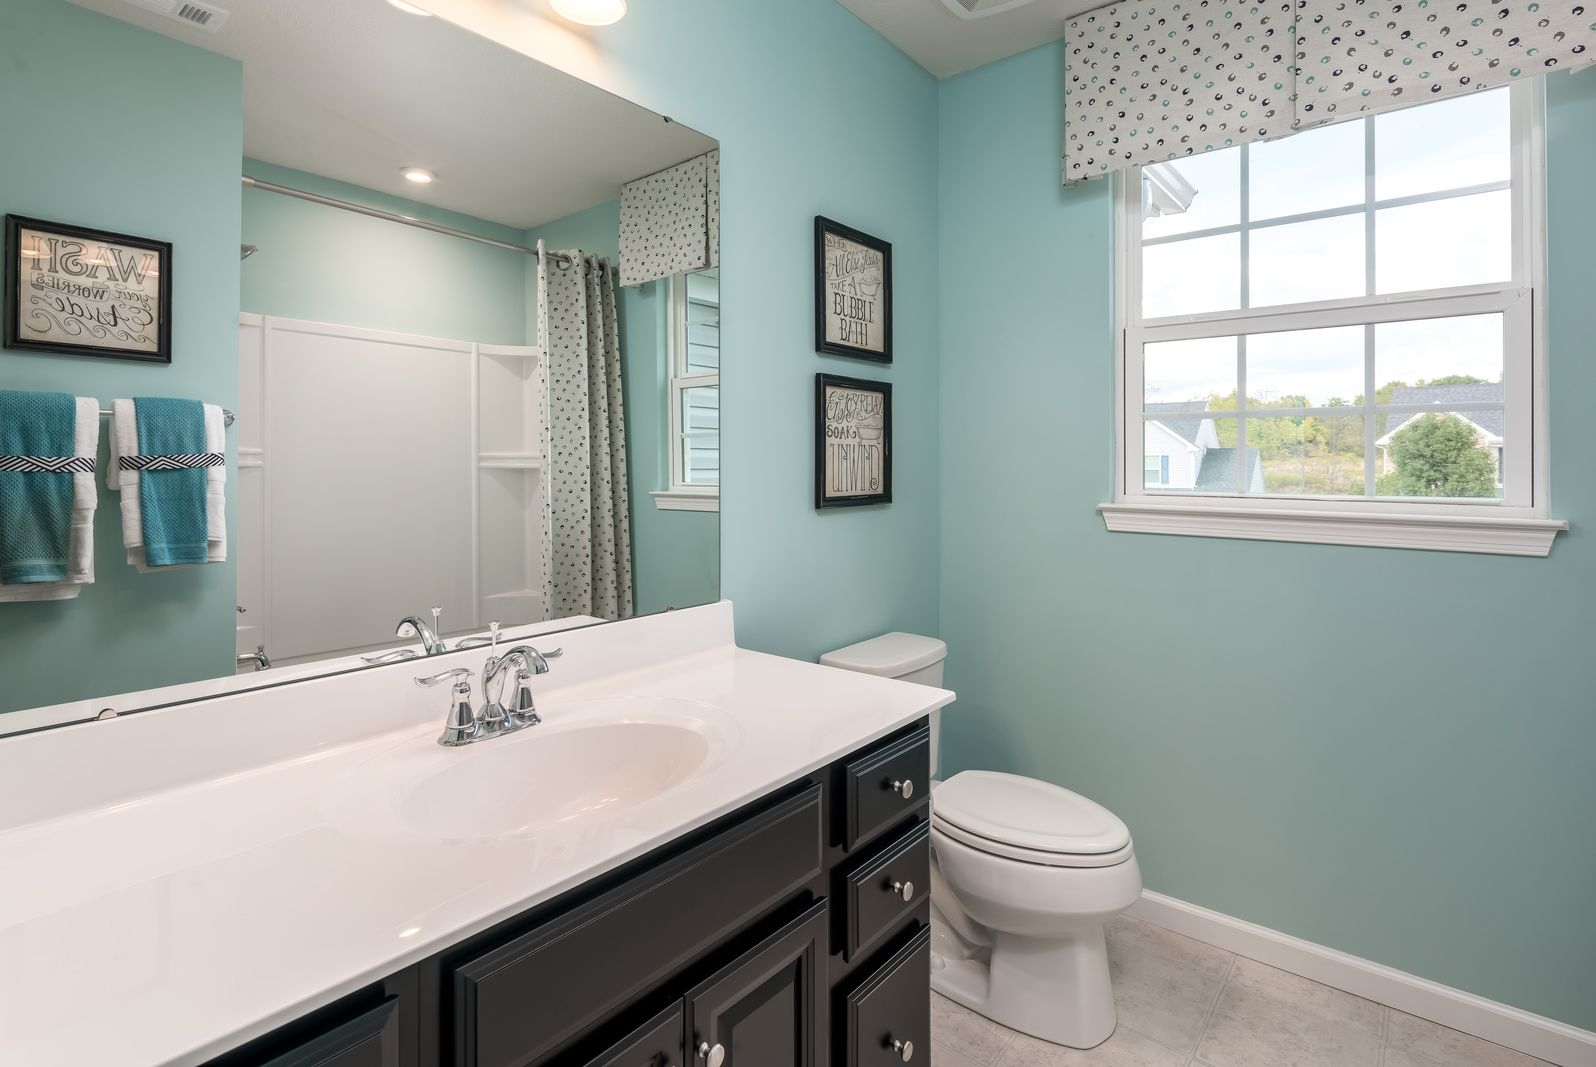 Bathroom featured in the Allegheny By Ryan Homes in Nashville, TN